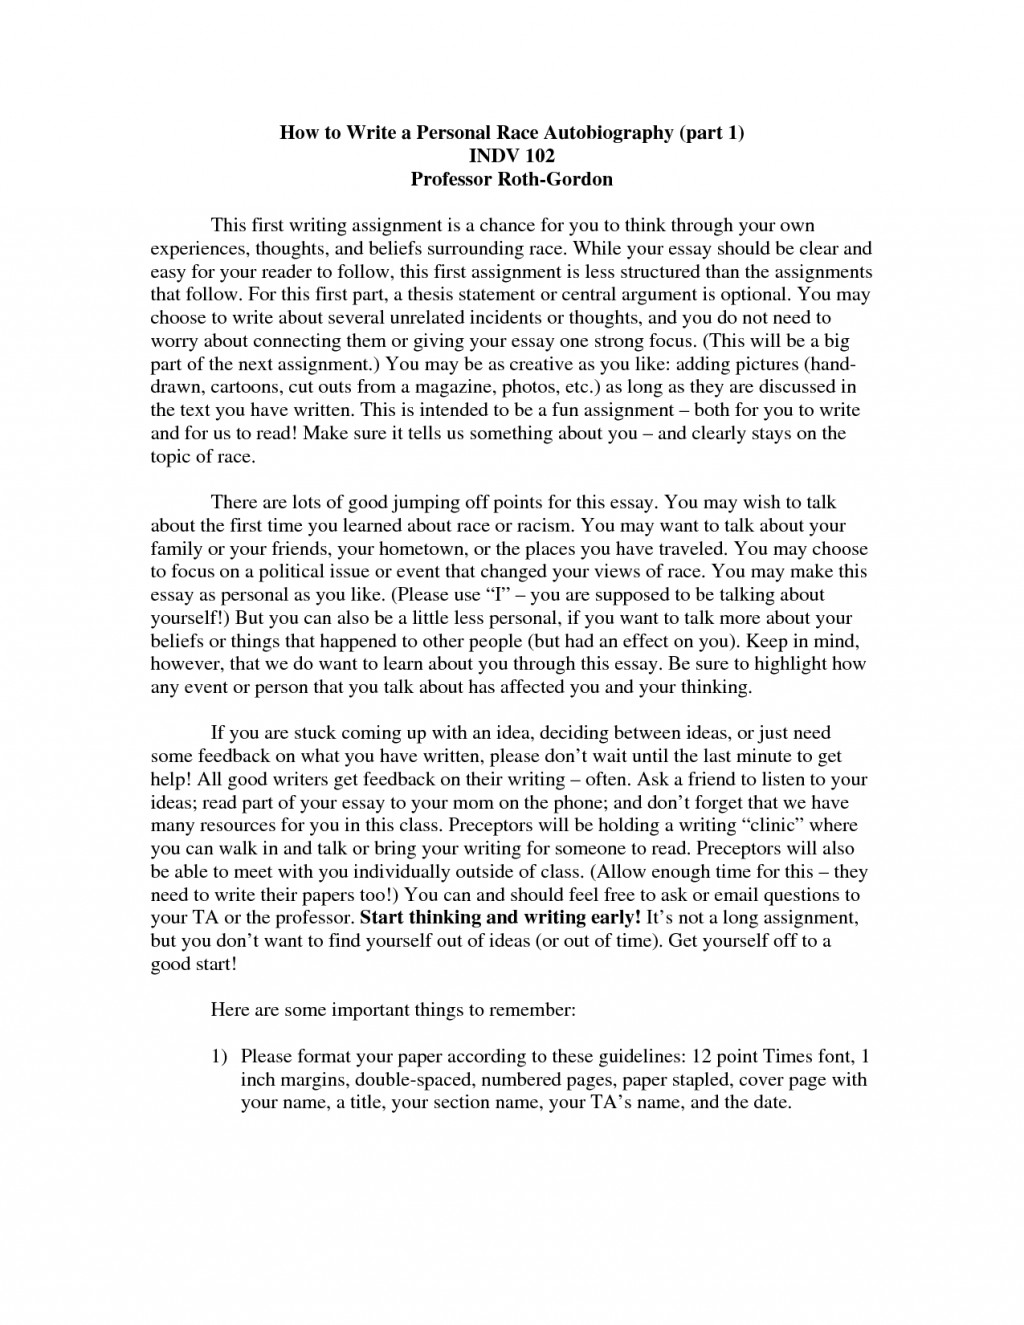 020 Essay Example Autobiography Best Photos Of Personal Narrative An Autobiographical How To Write Writing Outline For Scholarship College Admissions Unique Pdf Examples Large